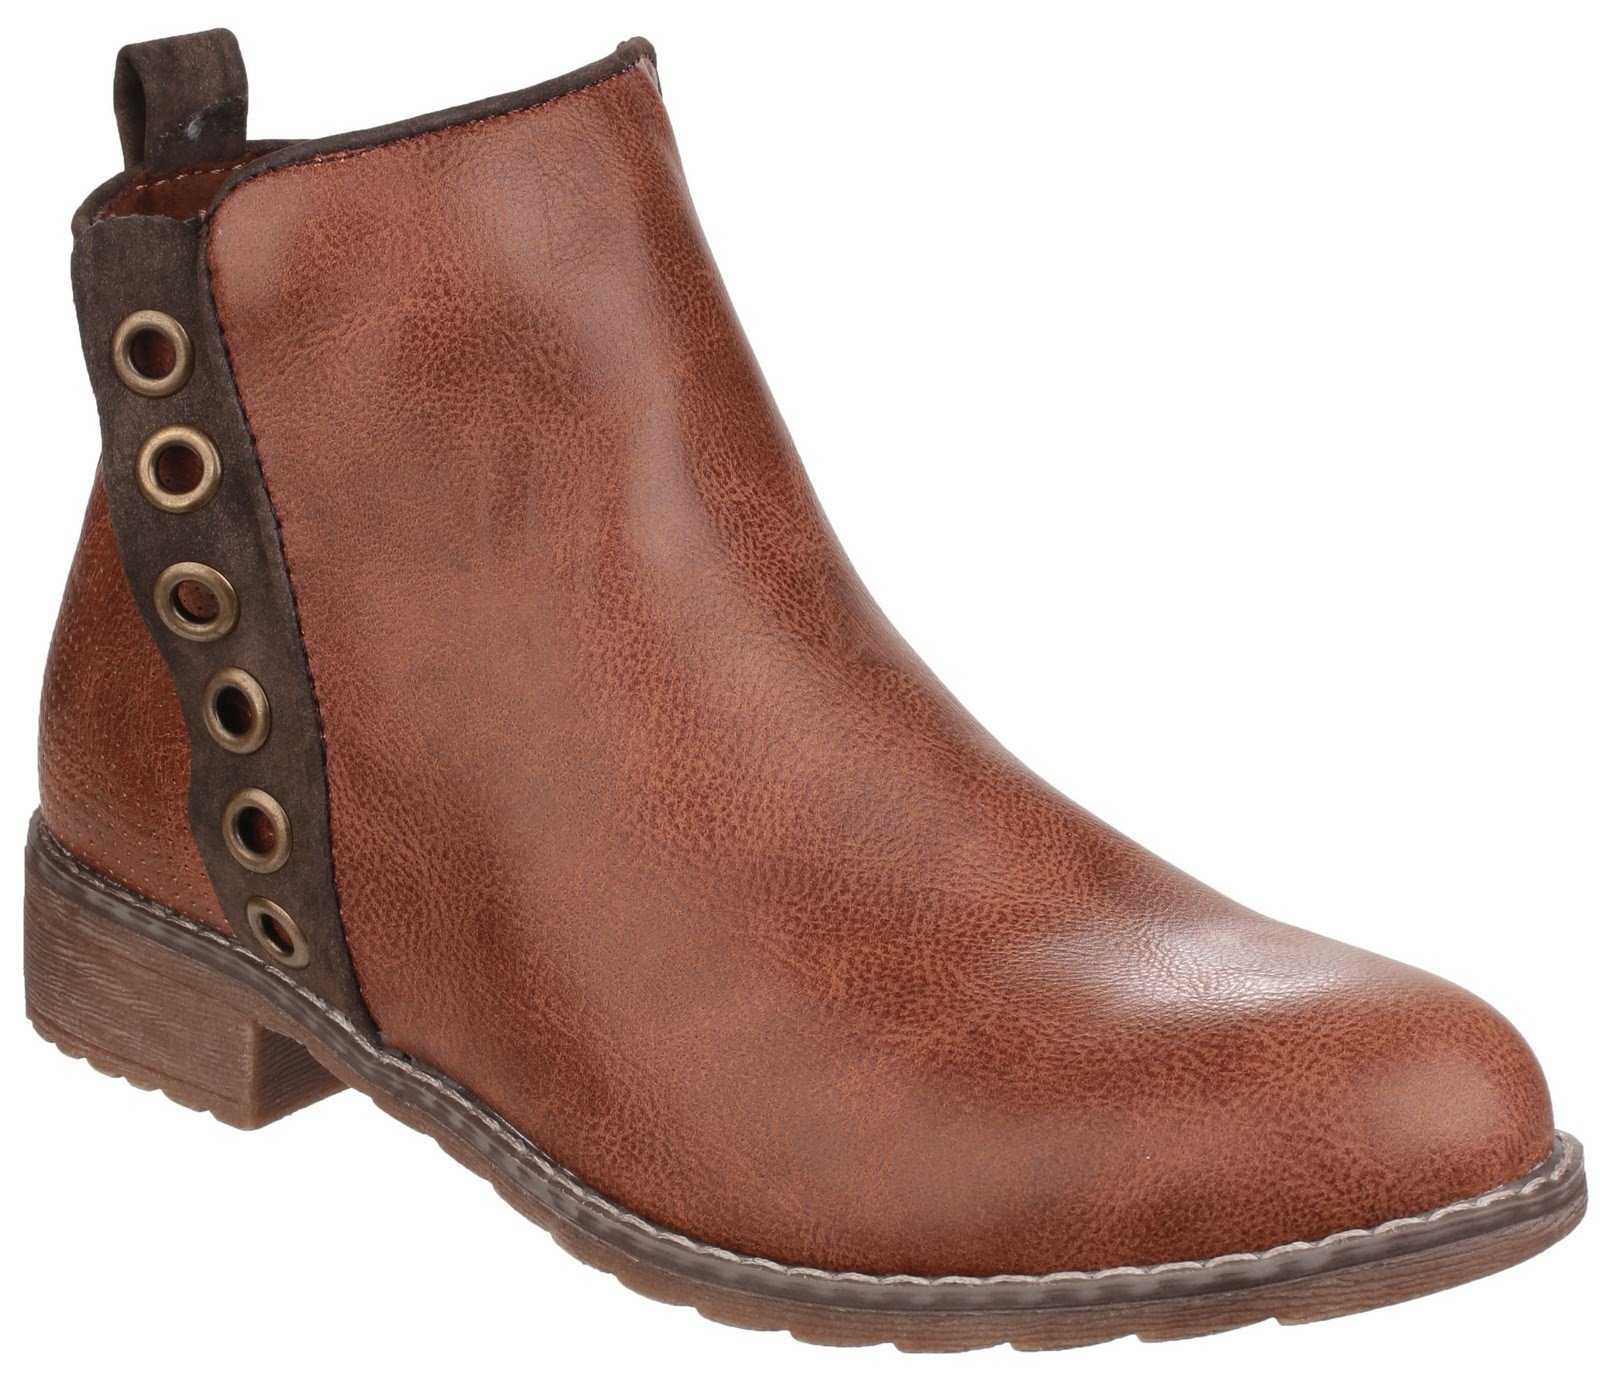 Divaz Women's Demi Pull On Ankle Boot Brown 24274-40026 - Tan 3